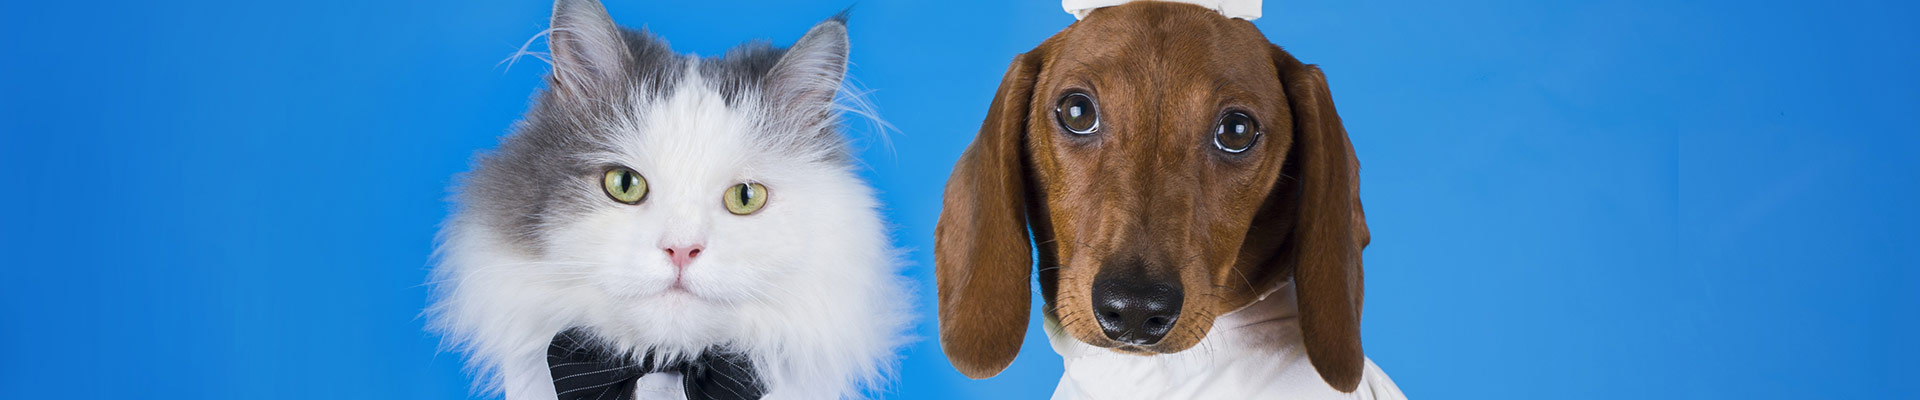 Dog and cat dressed up for event